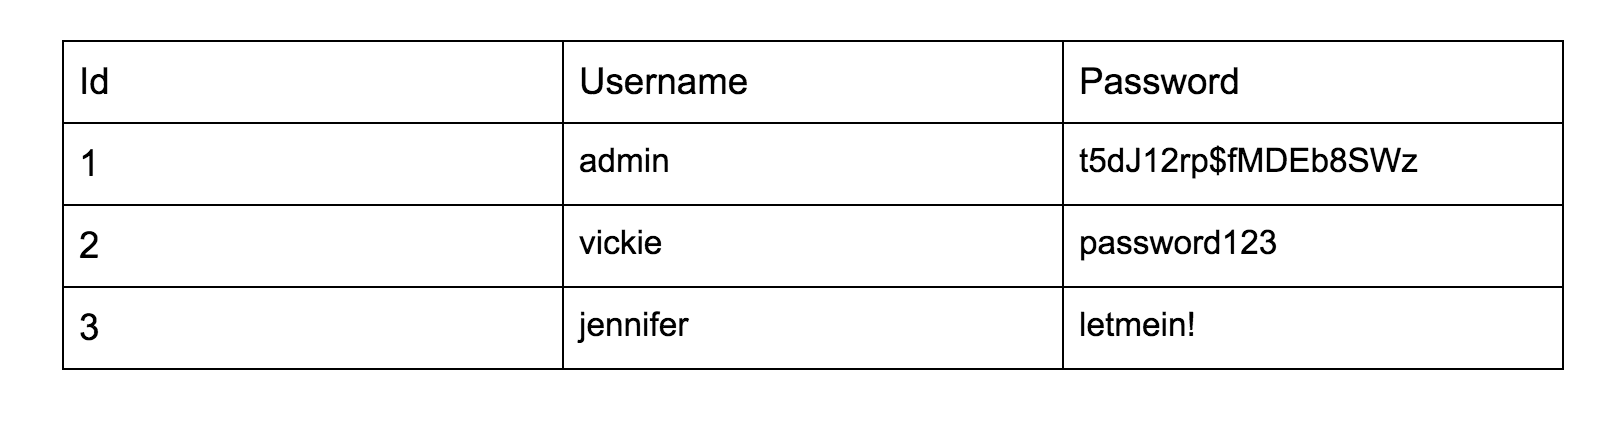 table with columns headed ID, username, and password, showing three rows of sample data